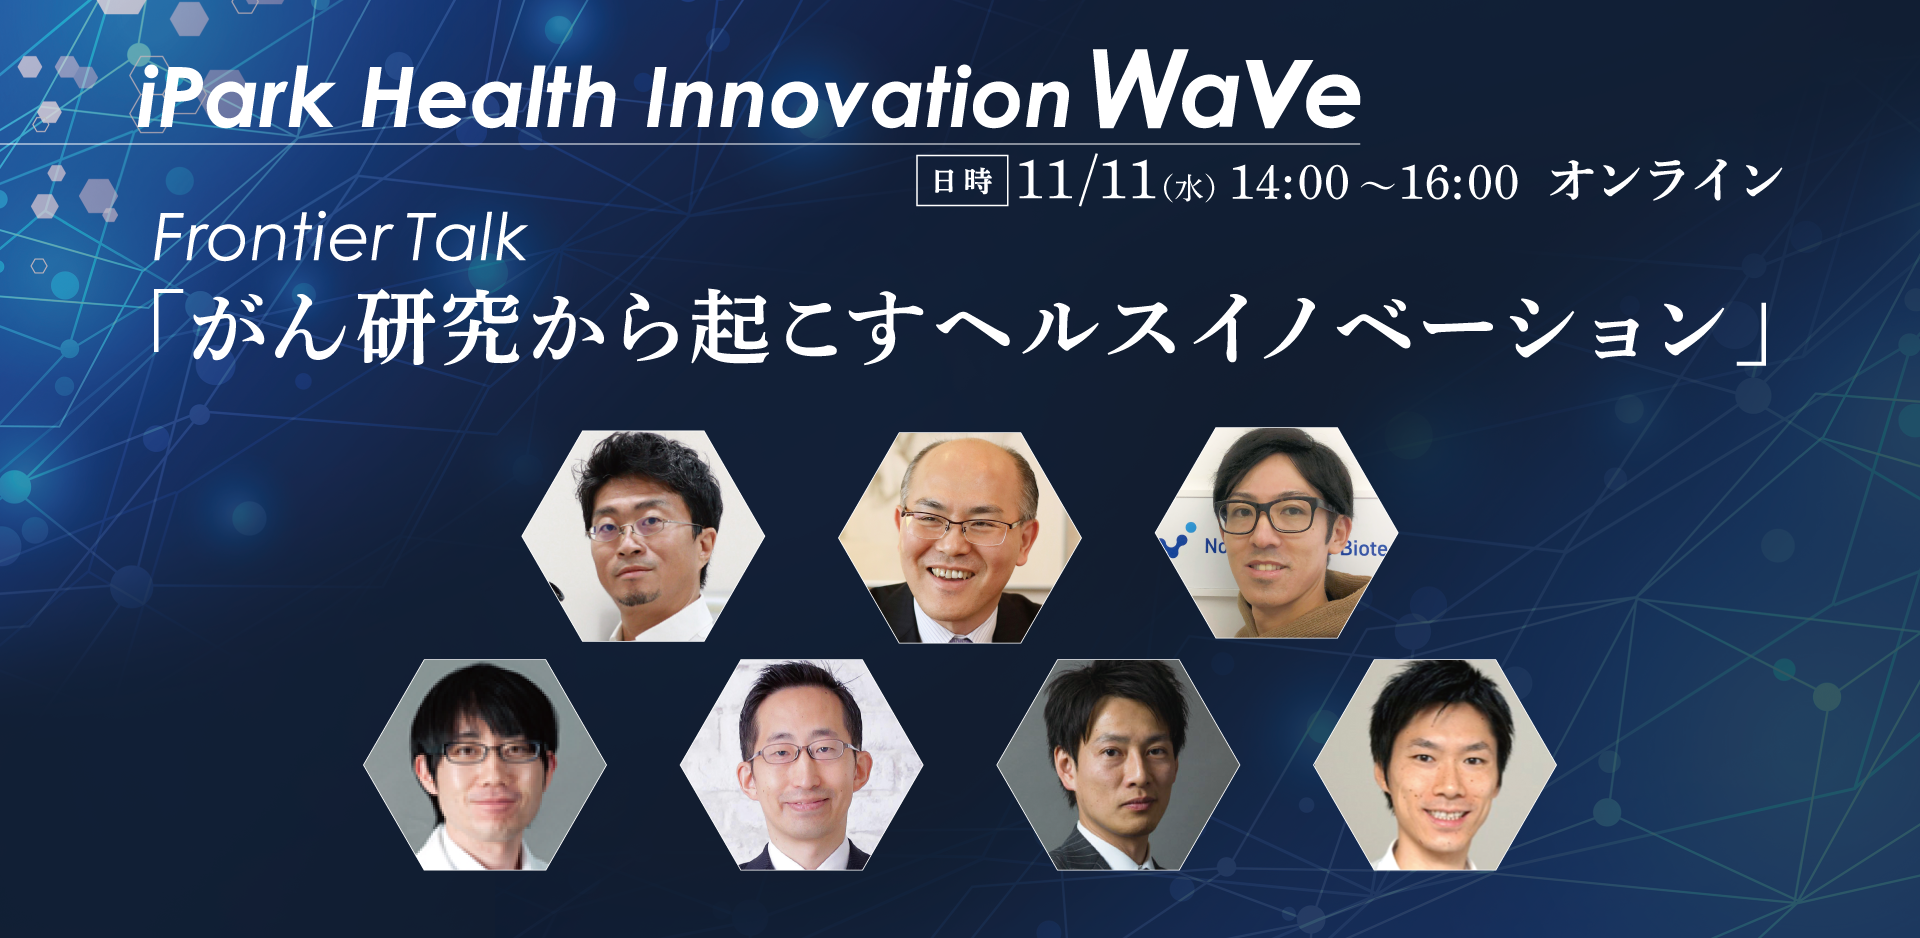 210111-iPark-Innovation-Wave-vol1.png